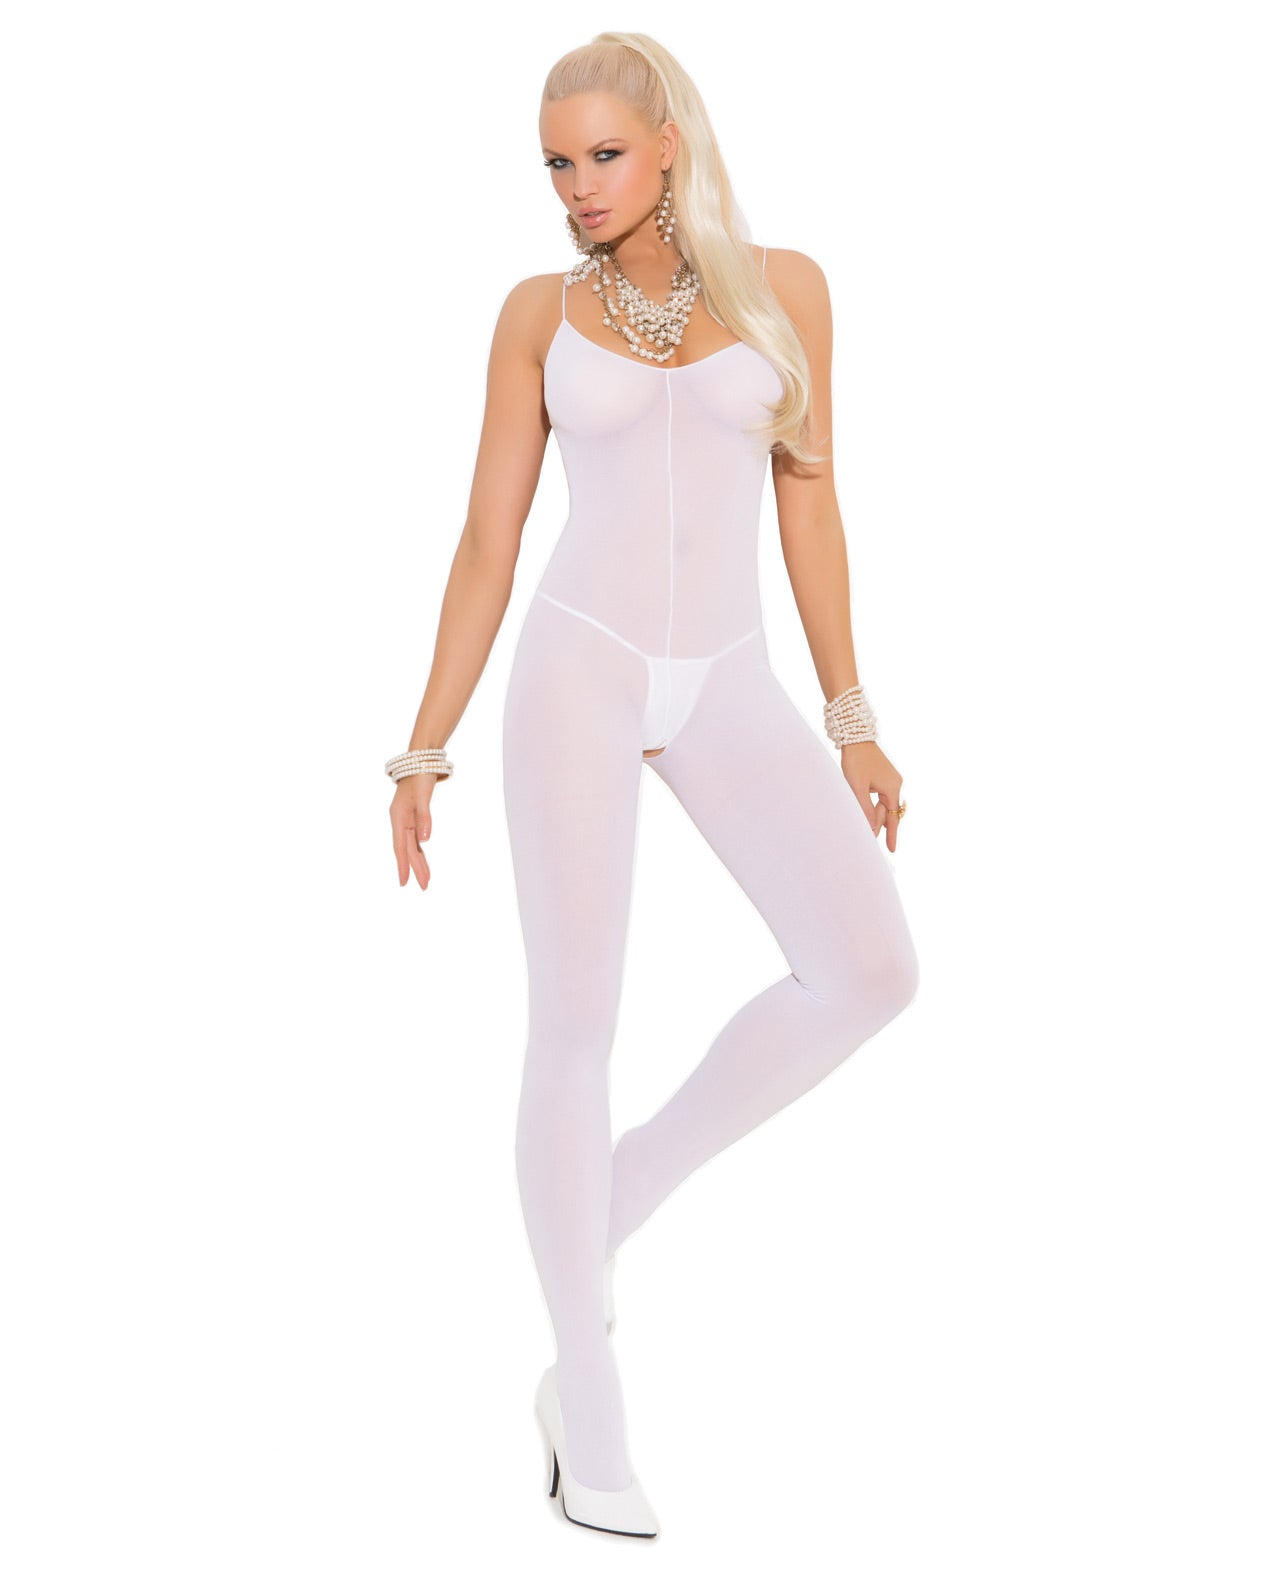 Opaque Bodystocking w/Spaghetti Straps & Open Crotch - White